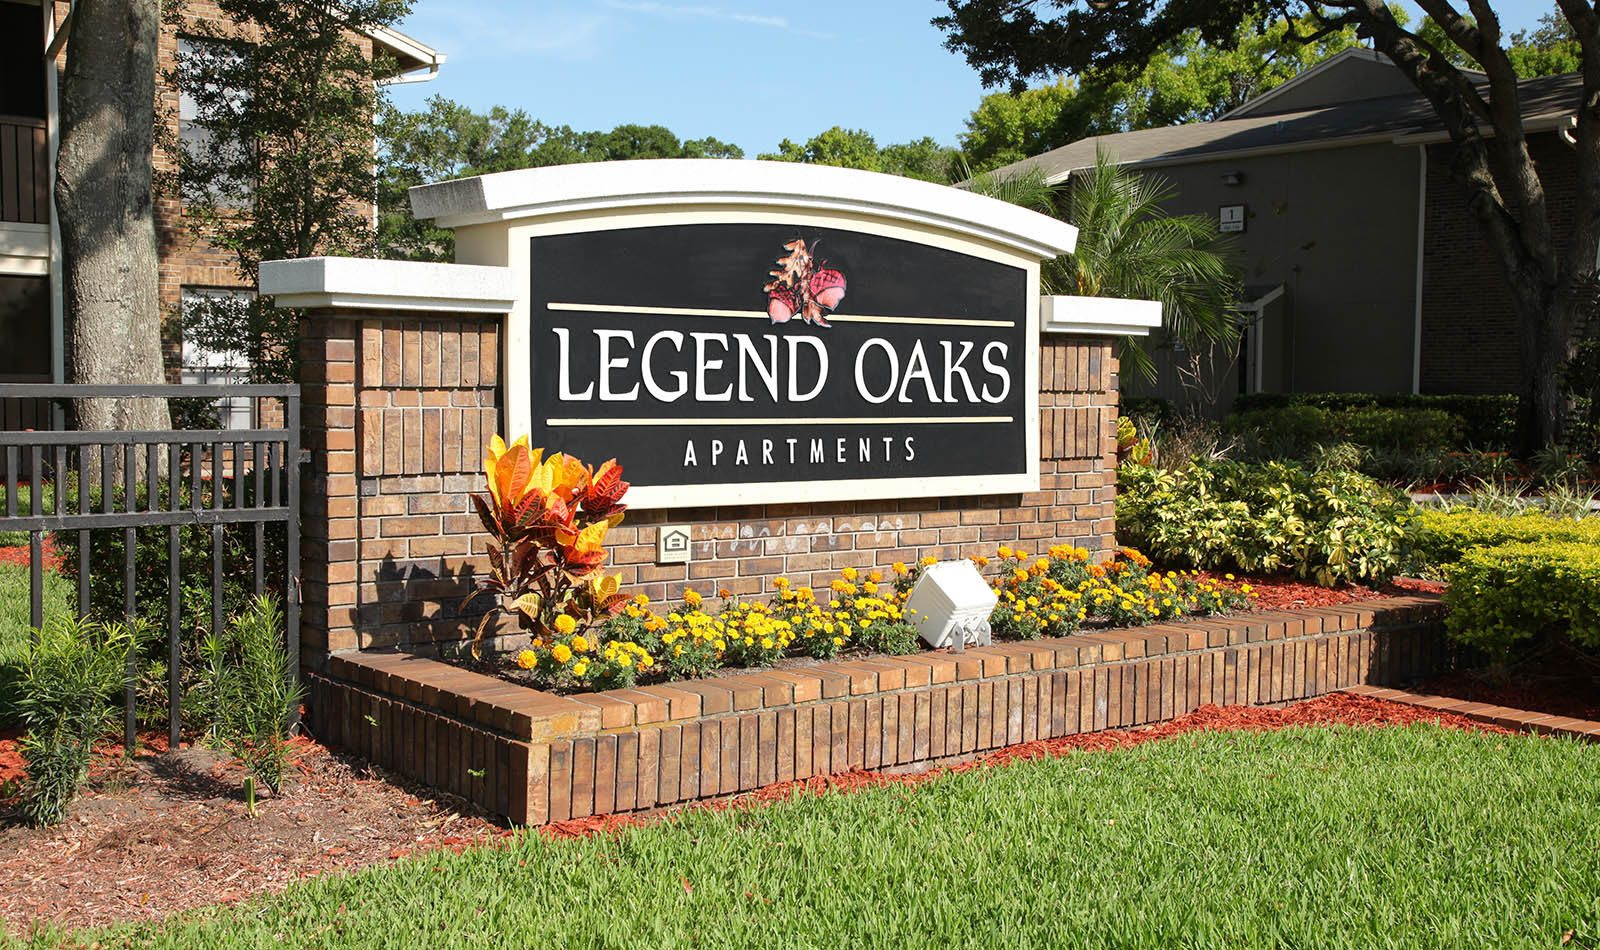 Signage at Legend Oaks Apartments in Tampa